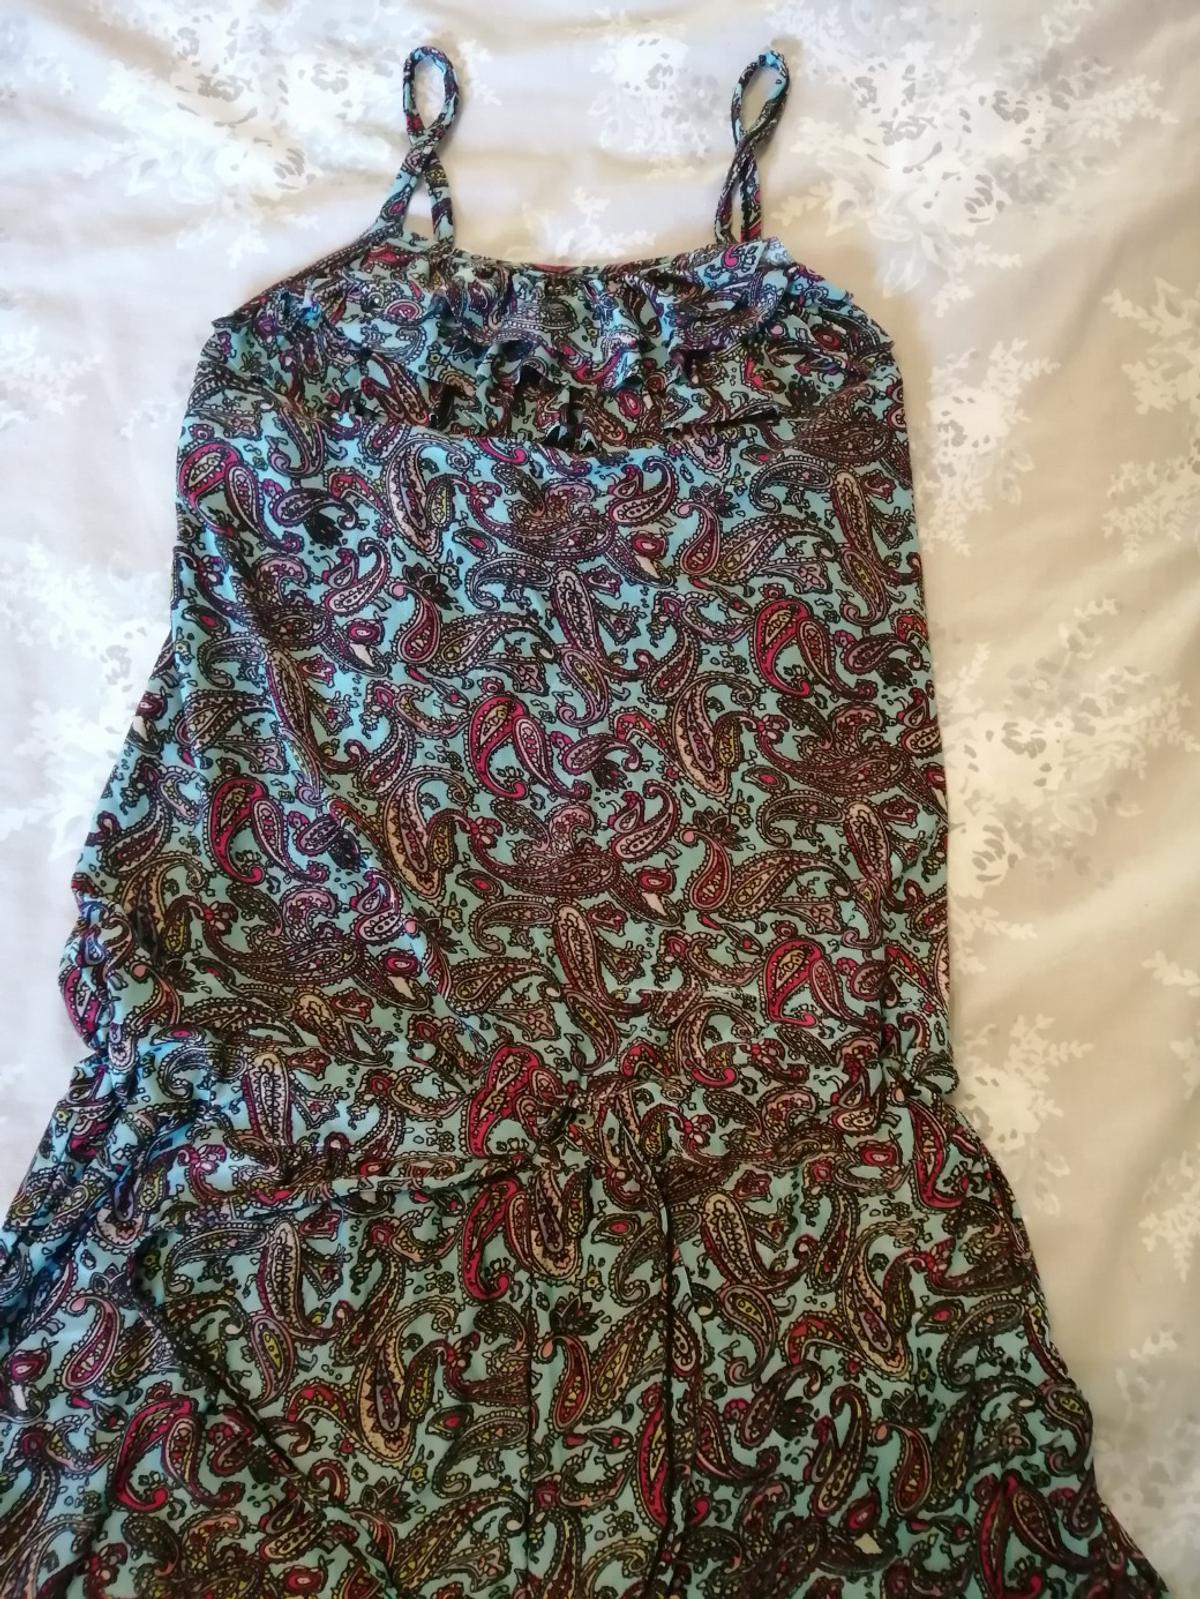 Size 10/12 and skirt is small size 14, both playsuit are size 10 to 12 too, £3 per item